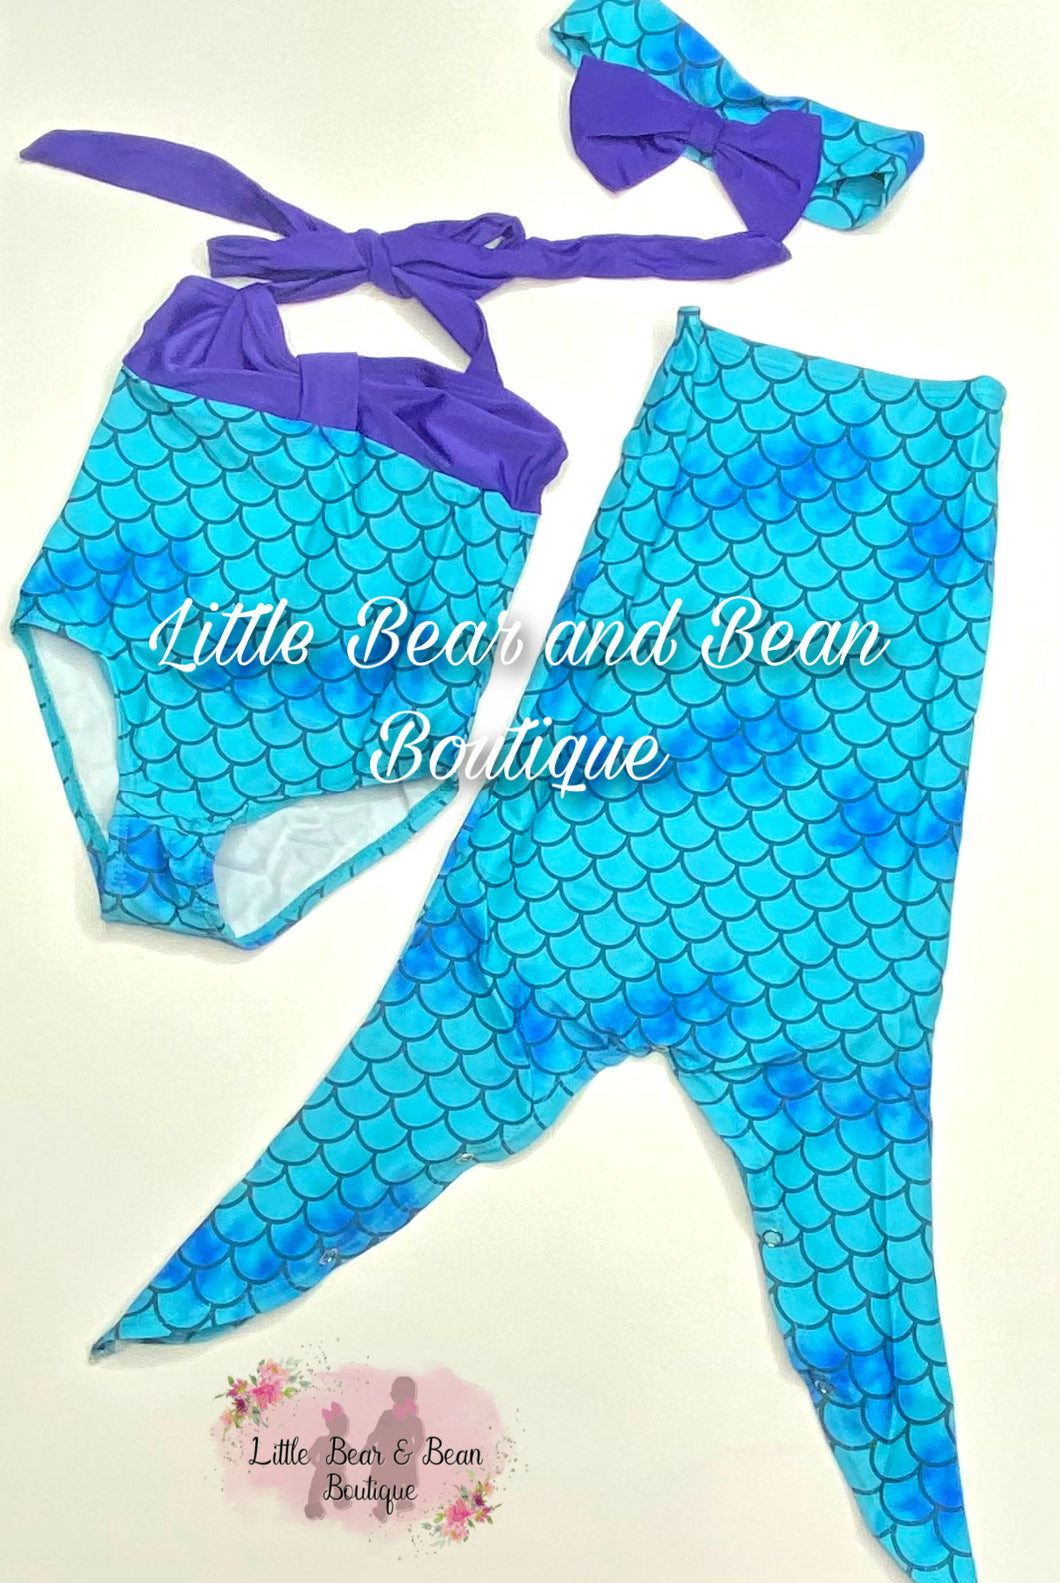 Mermaid Swim Suit with Accessories (3pc)